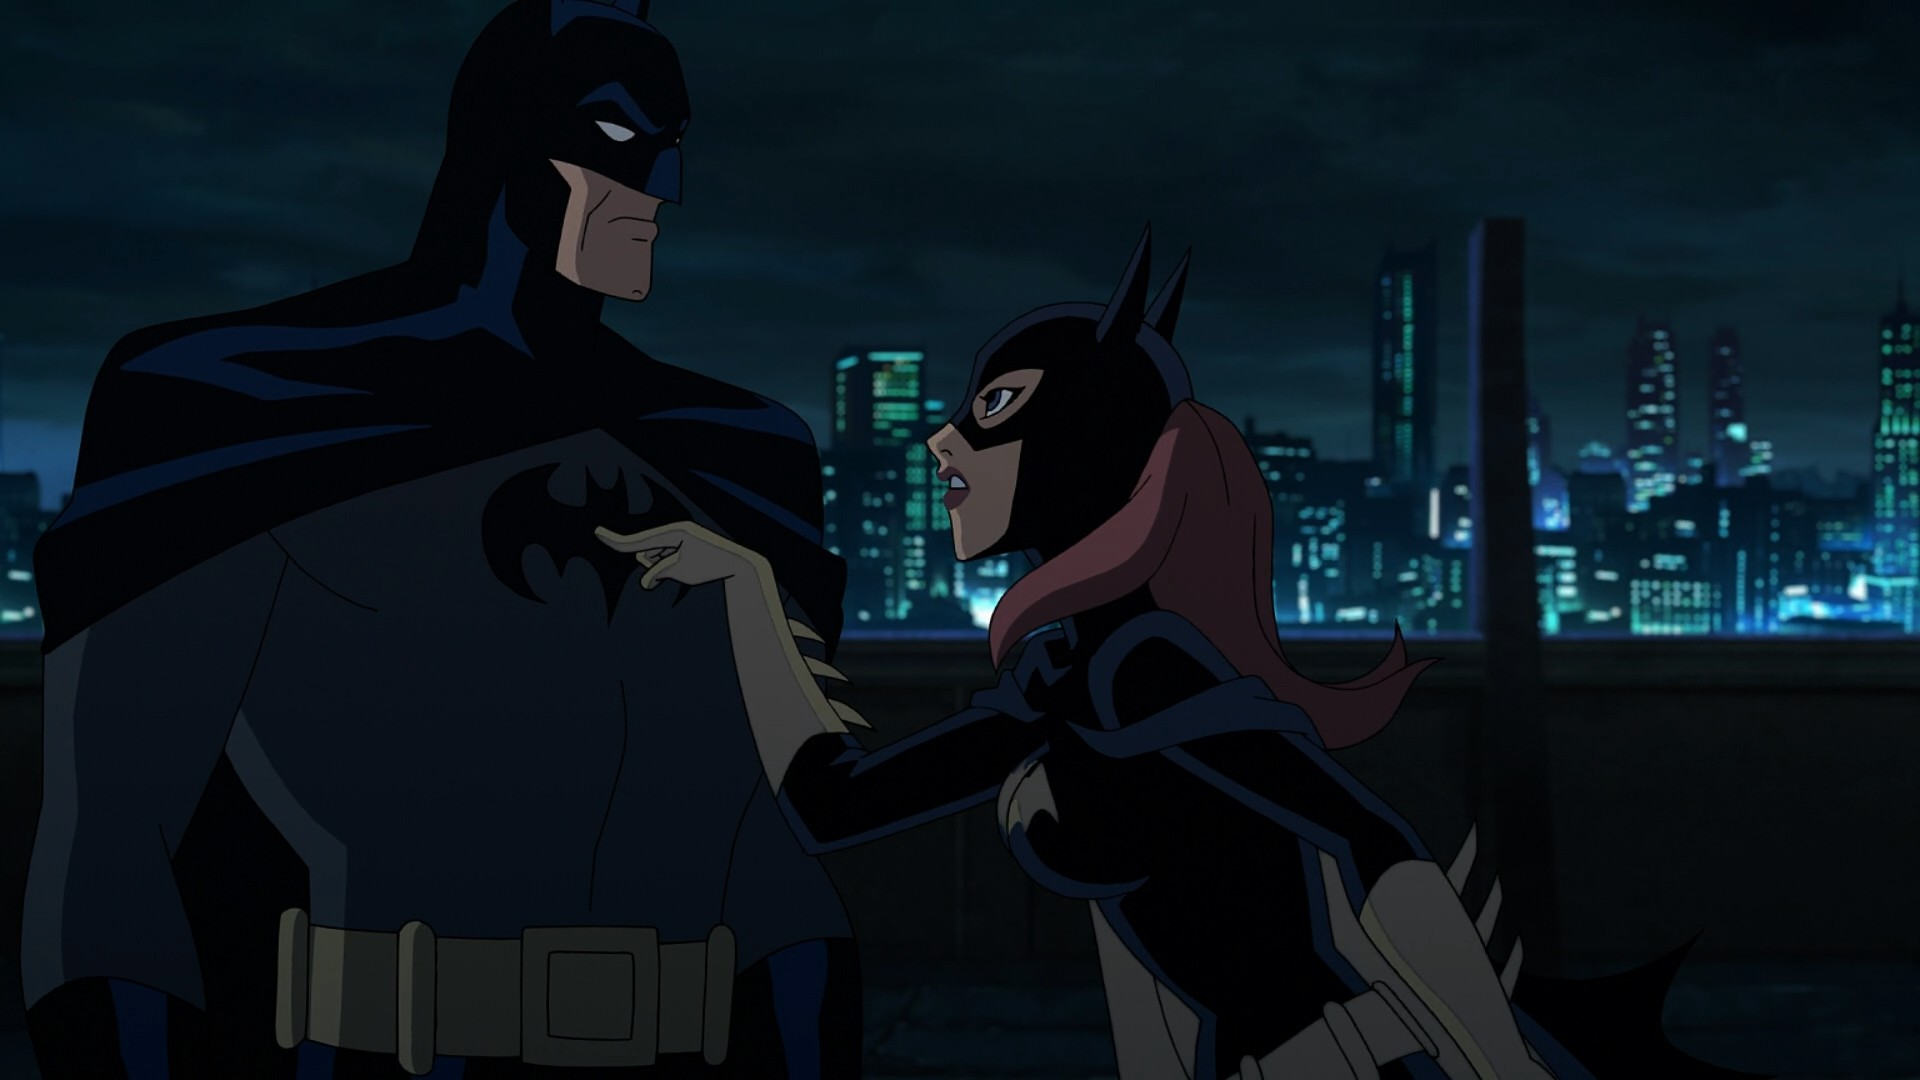 The Video: Sizing Up the Picture. 'Batman: The Killing Joke' …